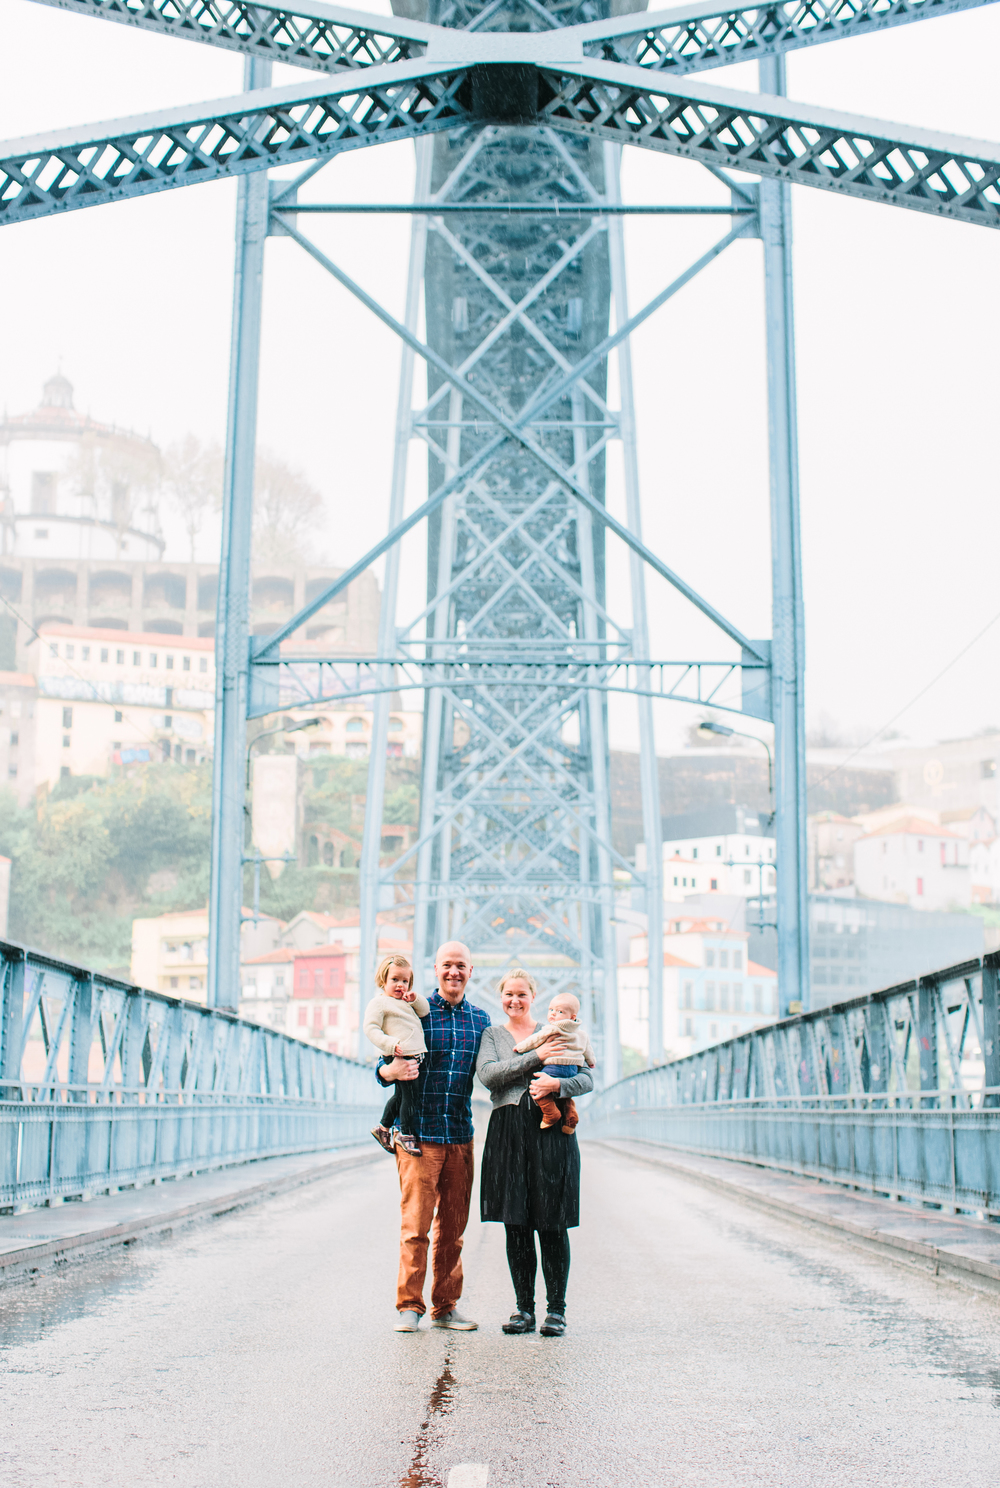 FLYTOGRAPHER Vacation Photographer in Porto